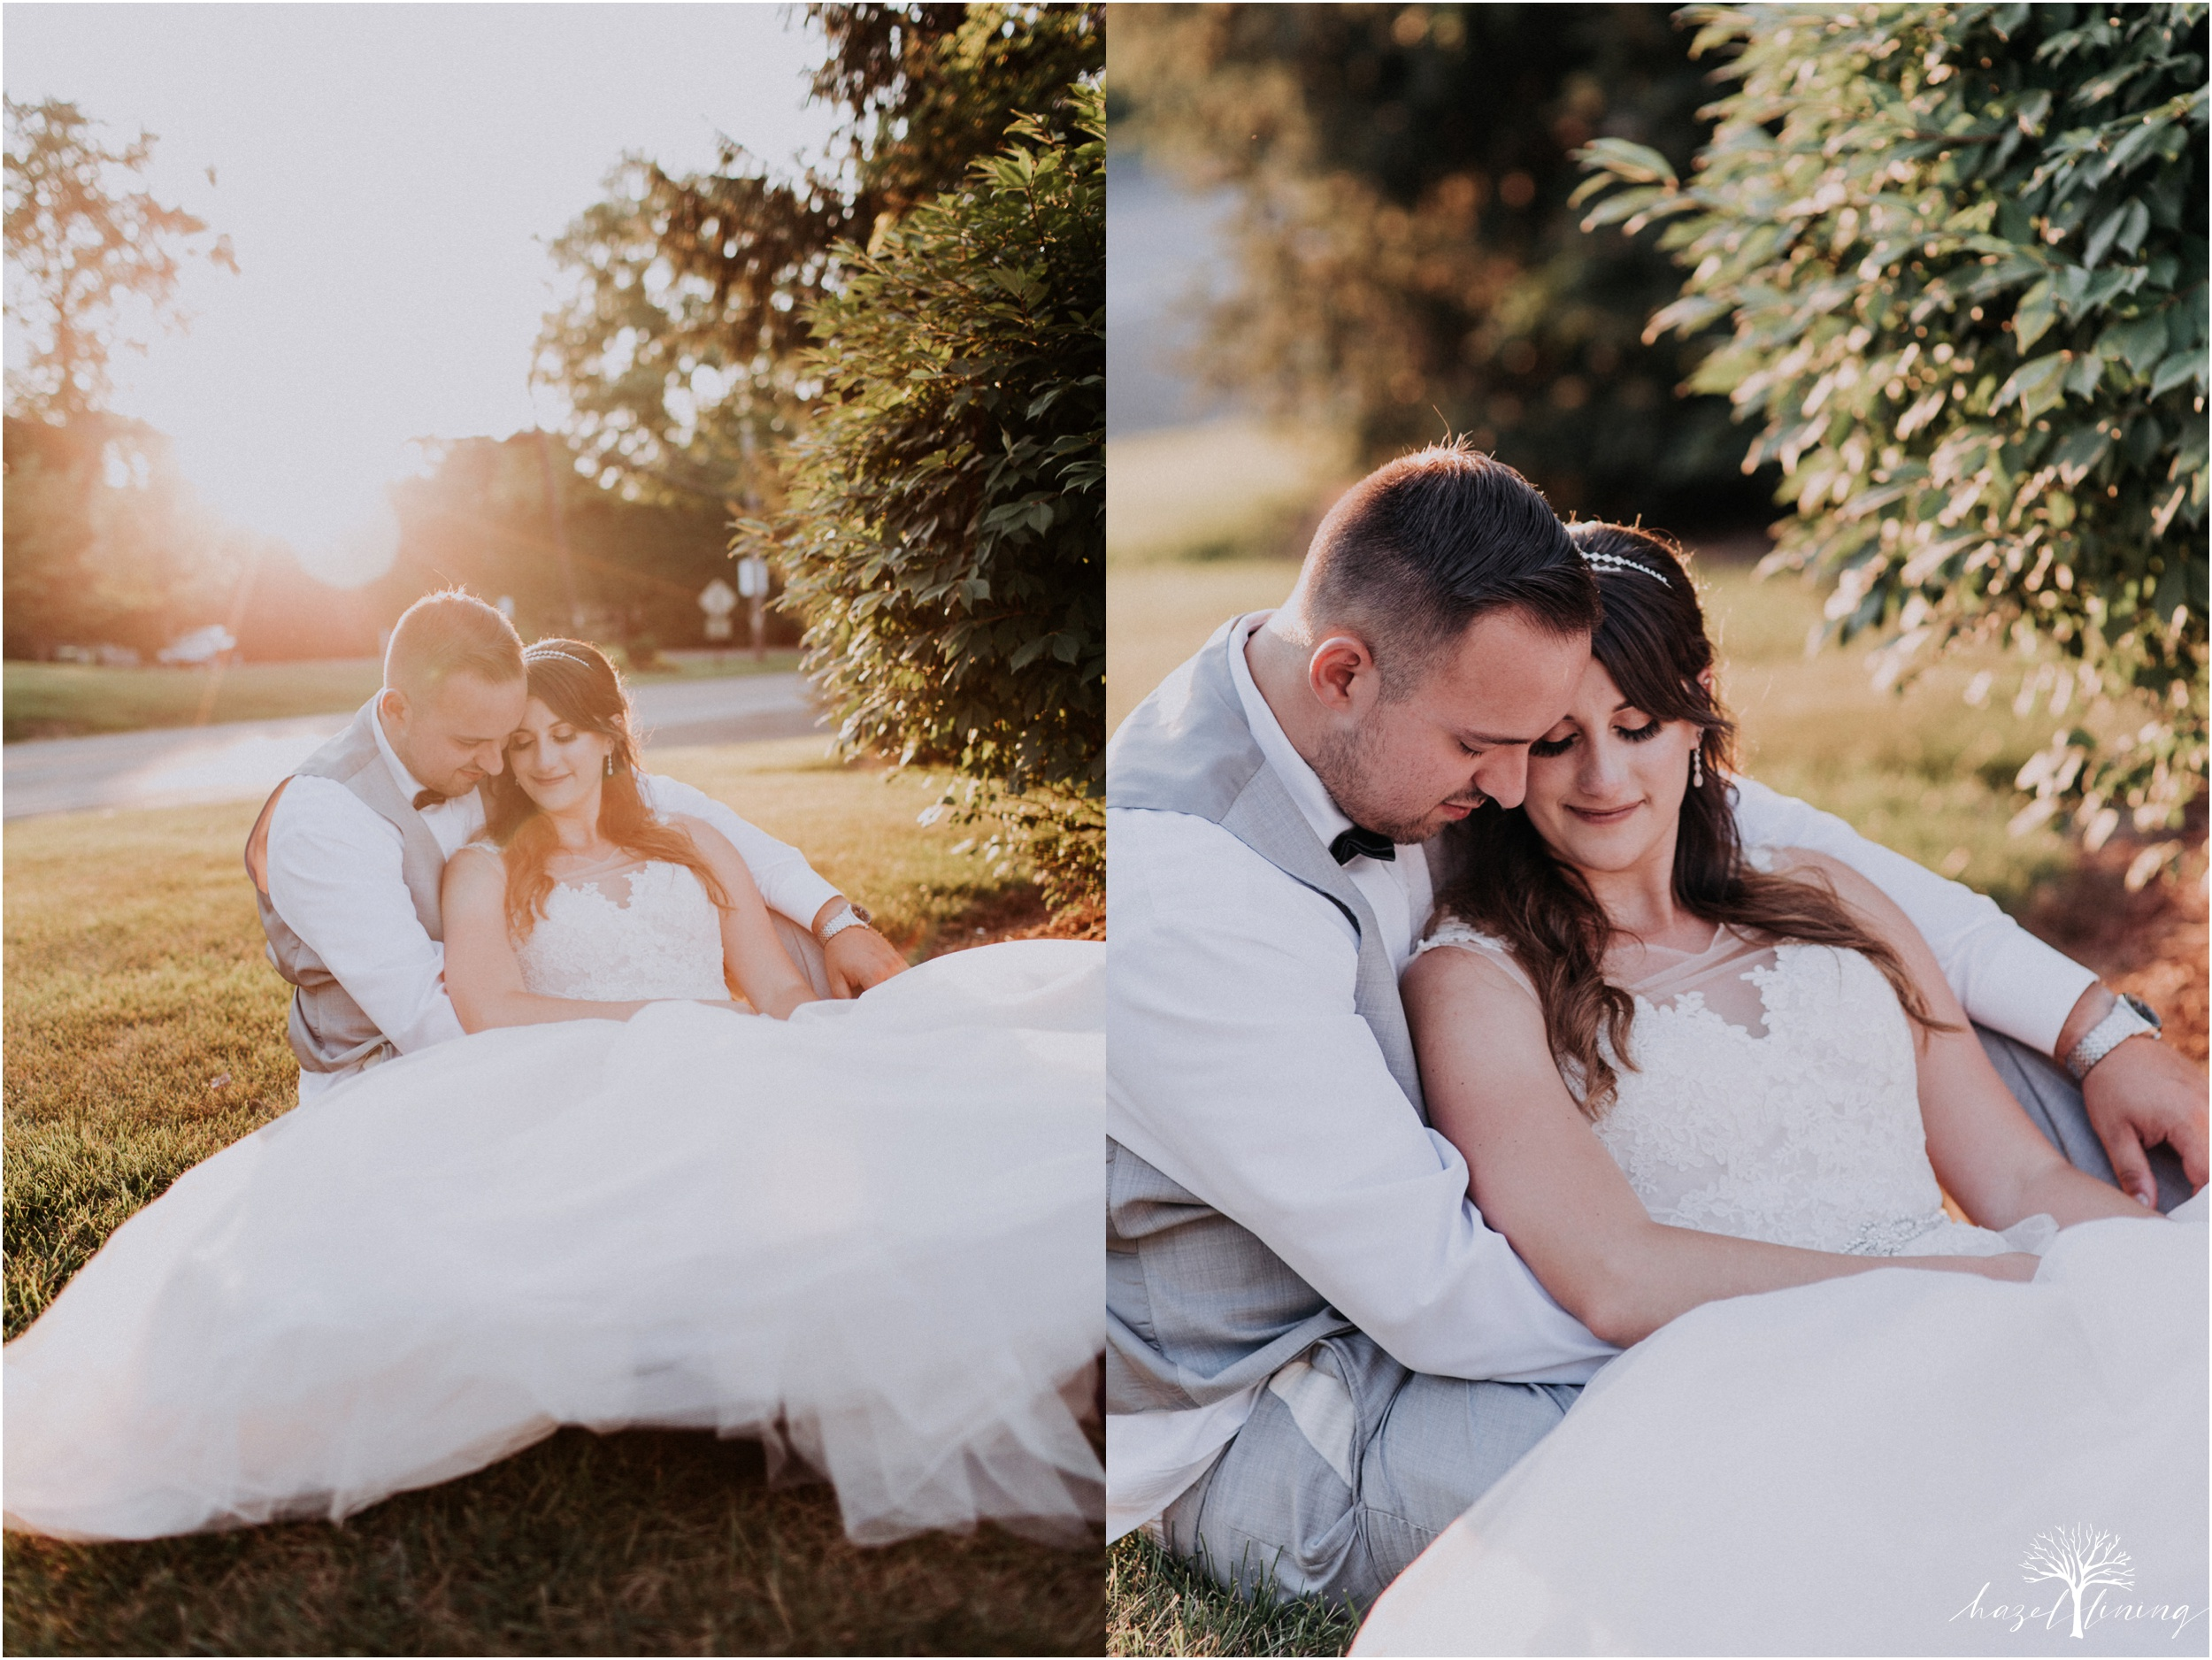 cassie-depinto-tyler-bodder-playwicki-farm-buck-hotel-featserville-trevose-pennsylvania-summer-outdoor-wedding-hazel-lining-travel-wedding-elopement-photography_0317.jpg